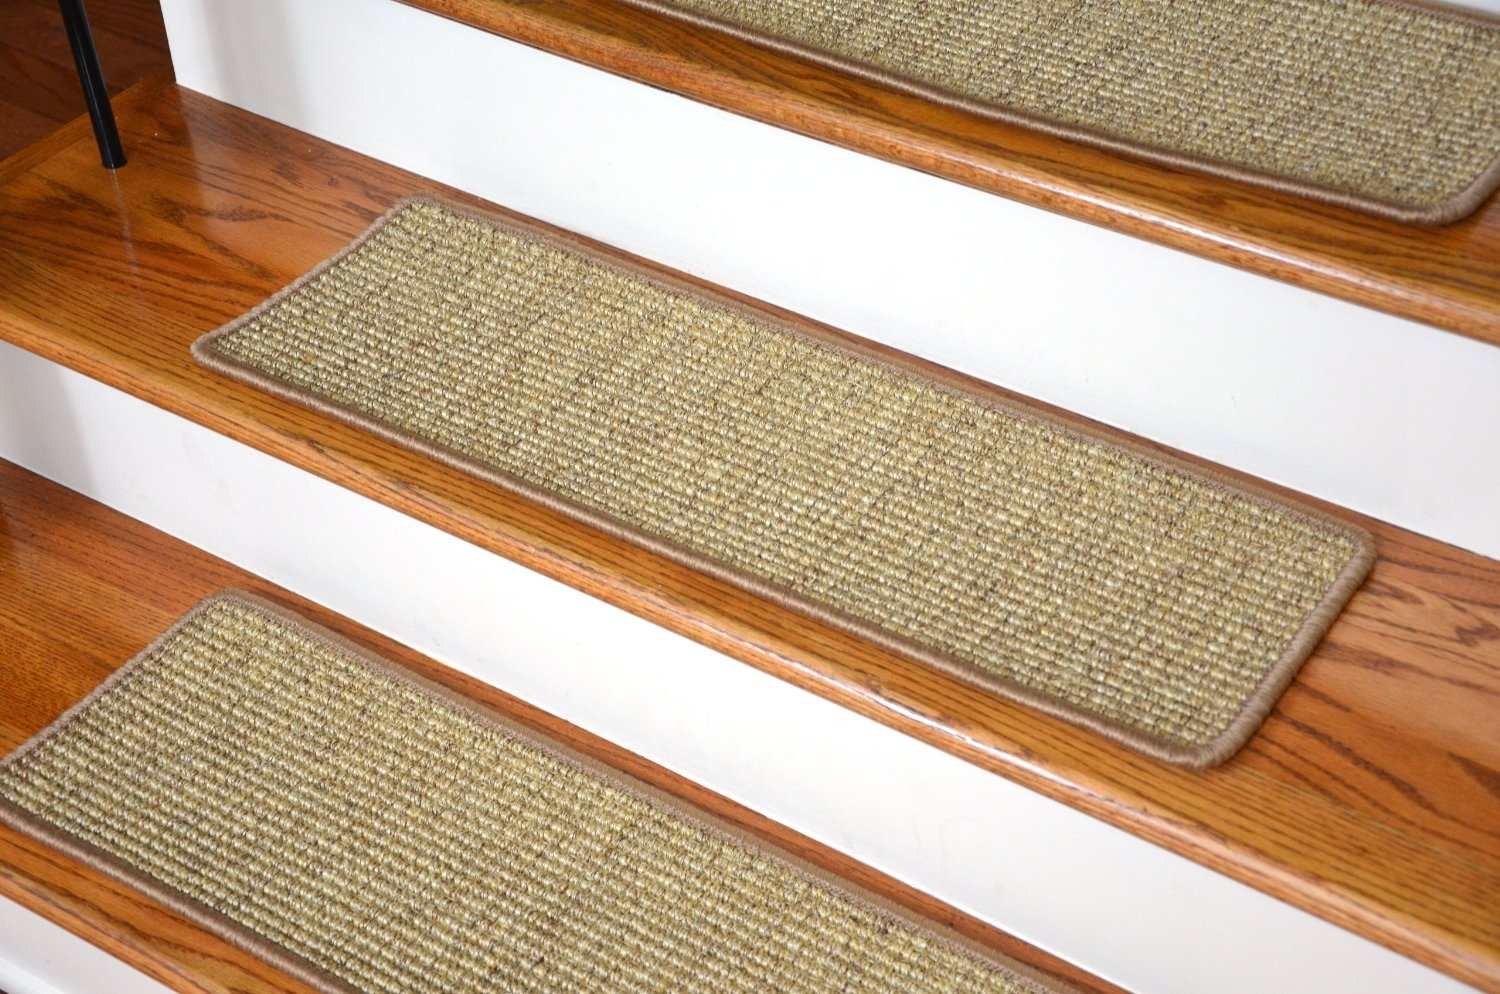 Decor Beautiful Stair Tread Covers Make An Elegant Addition To Pertaining To Rectangular Stair Tread Rugs (Image 6 of 15)